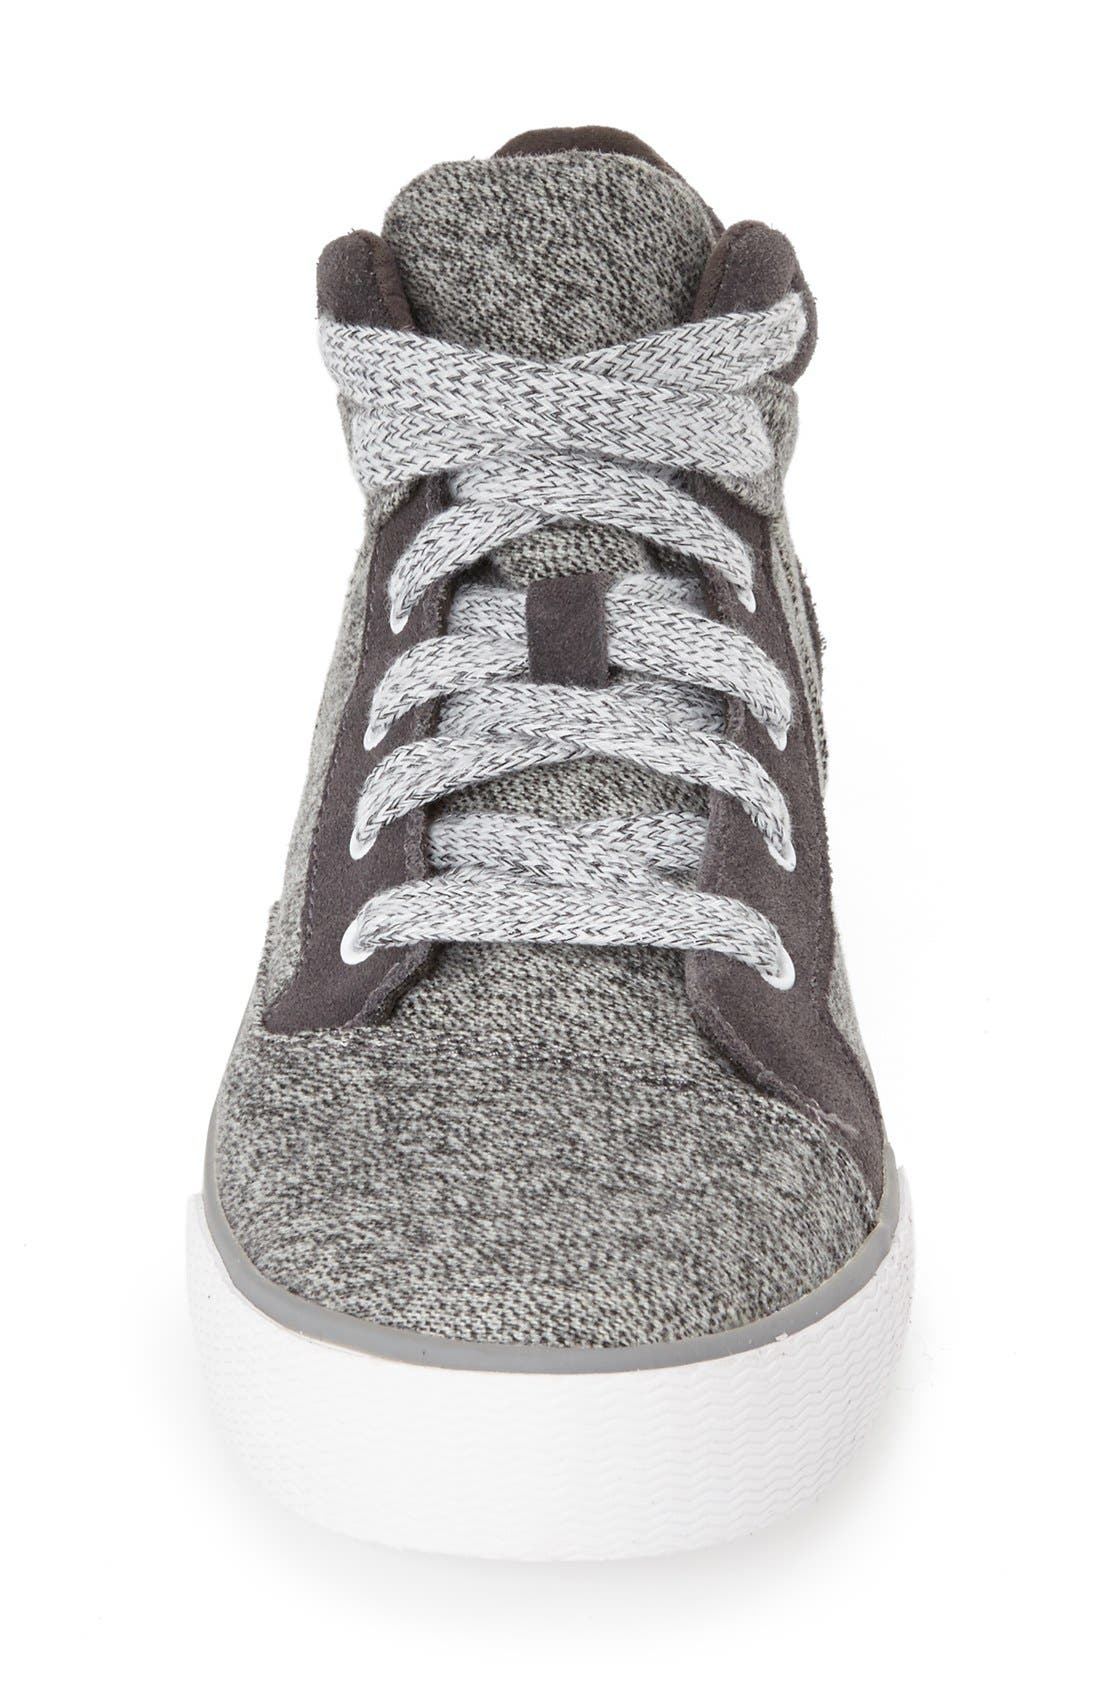 Alternate Image 3  - TOMS 'Camila' High Top Sneaker (Women)